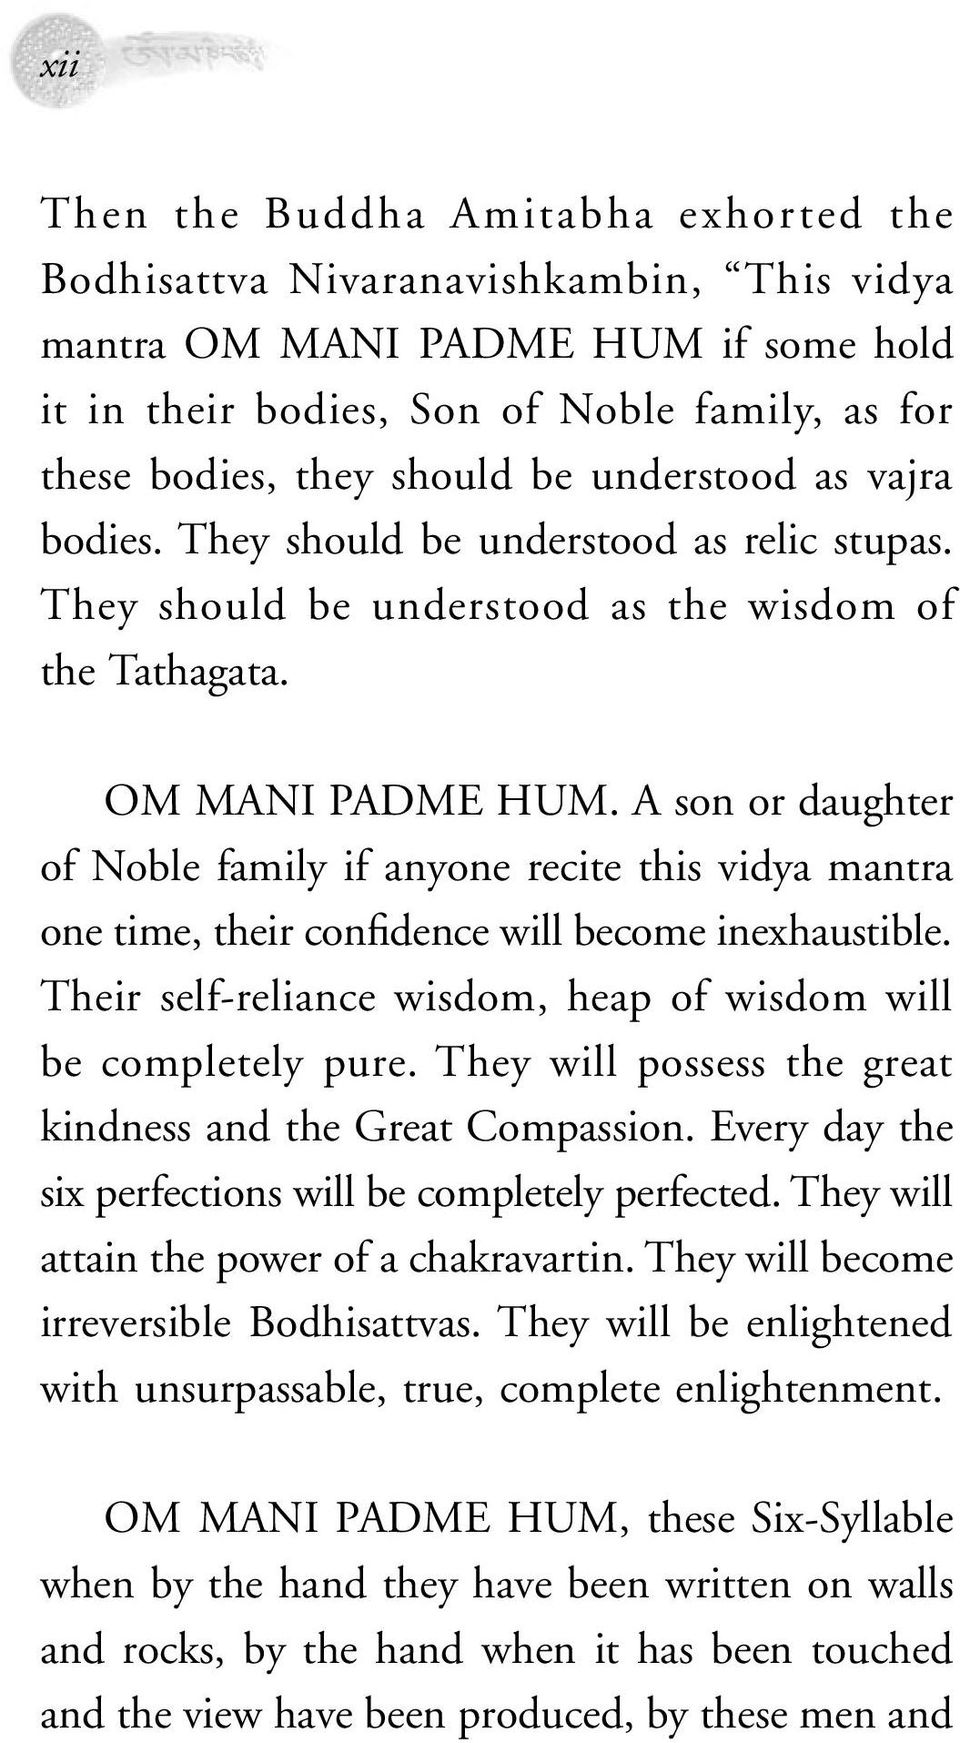 A son or daughter of Noble family if anyone recite this vidya mantra one time, their confidence will become inexhaustible. Their self-reliance wisdom, heap of wisdom will be completely pure.